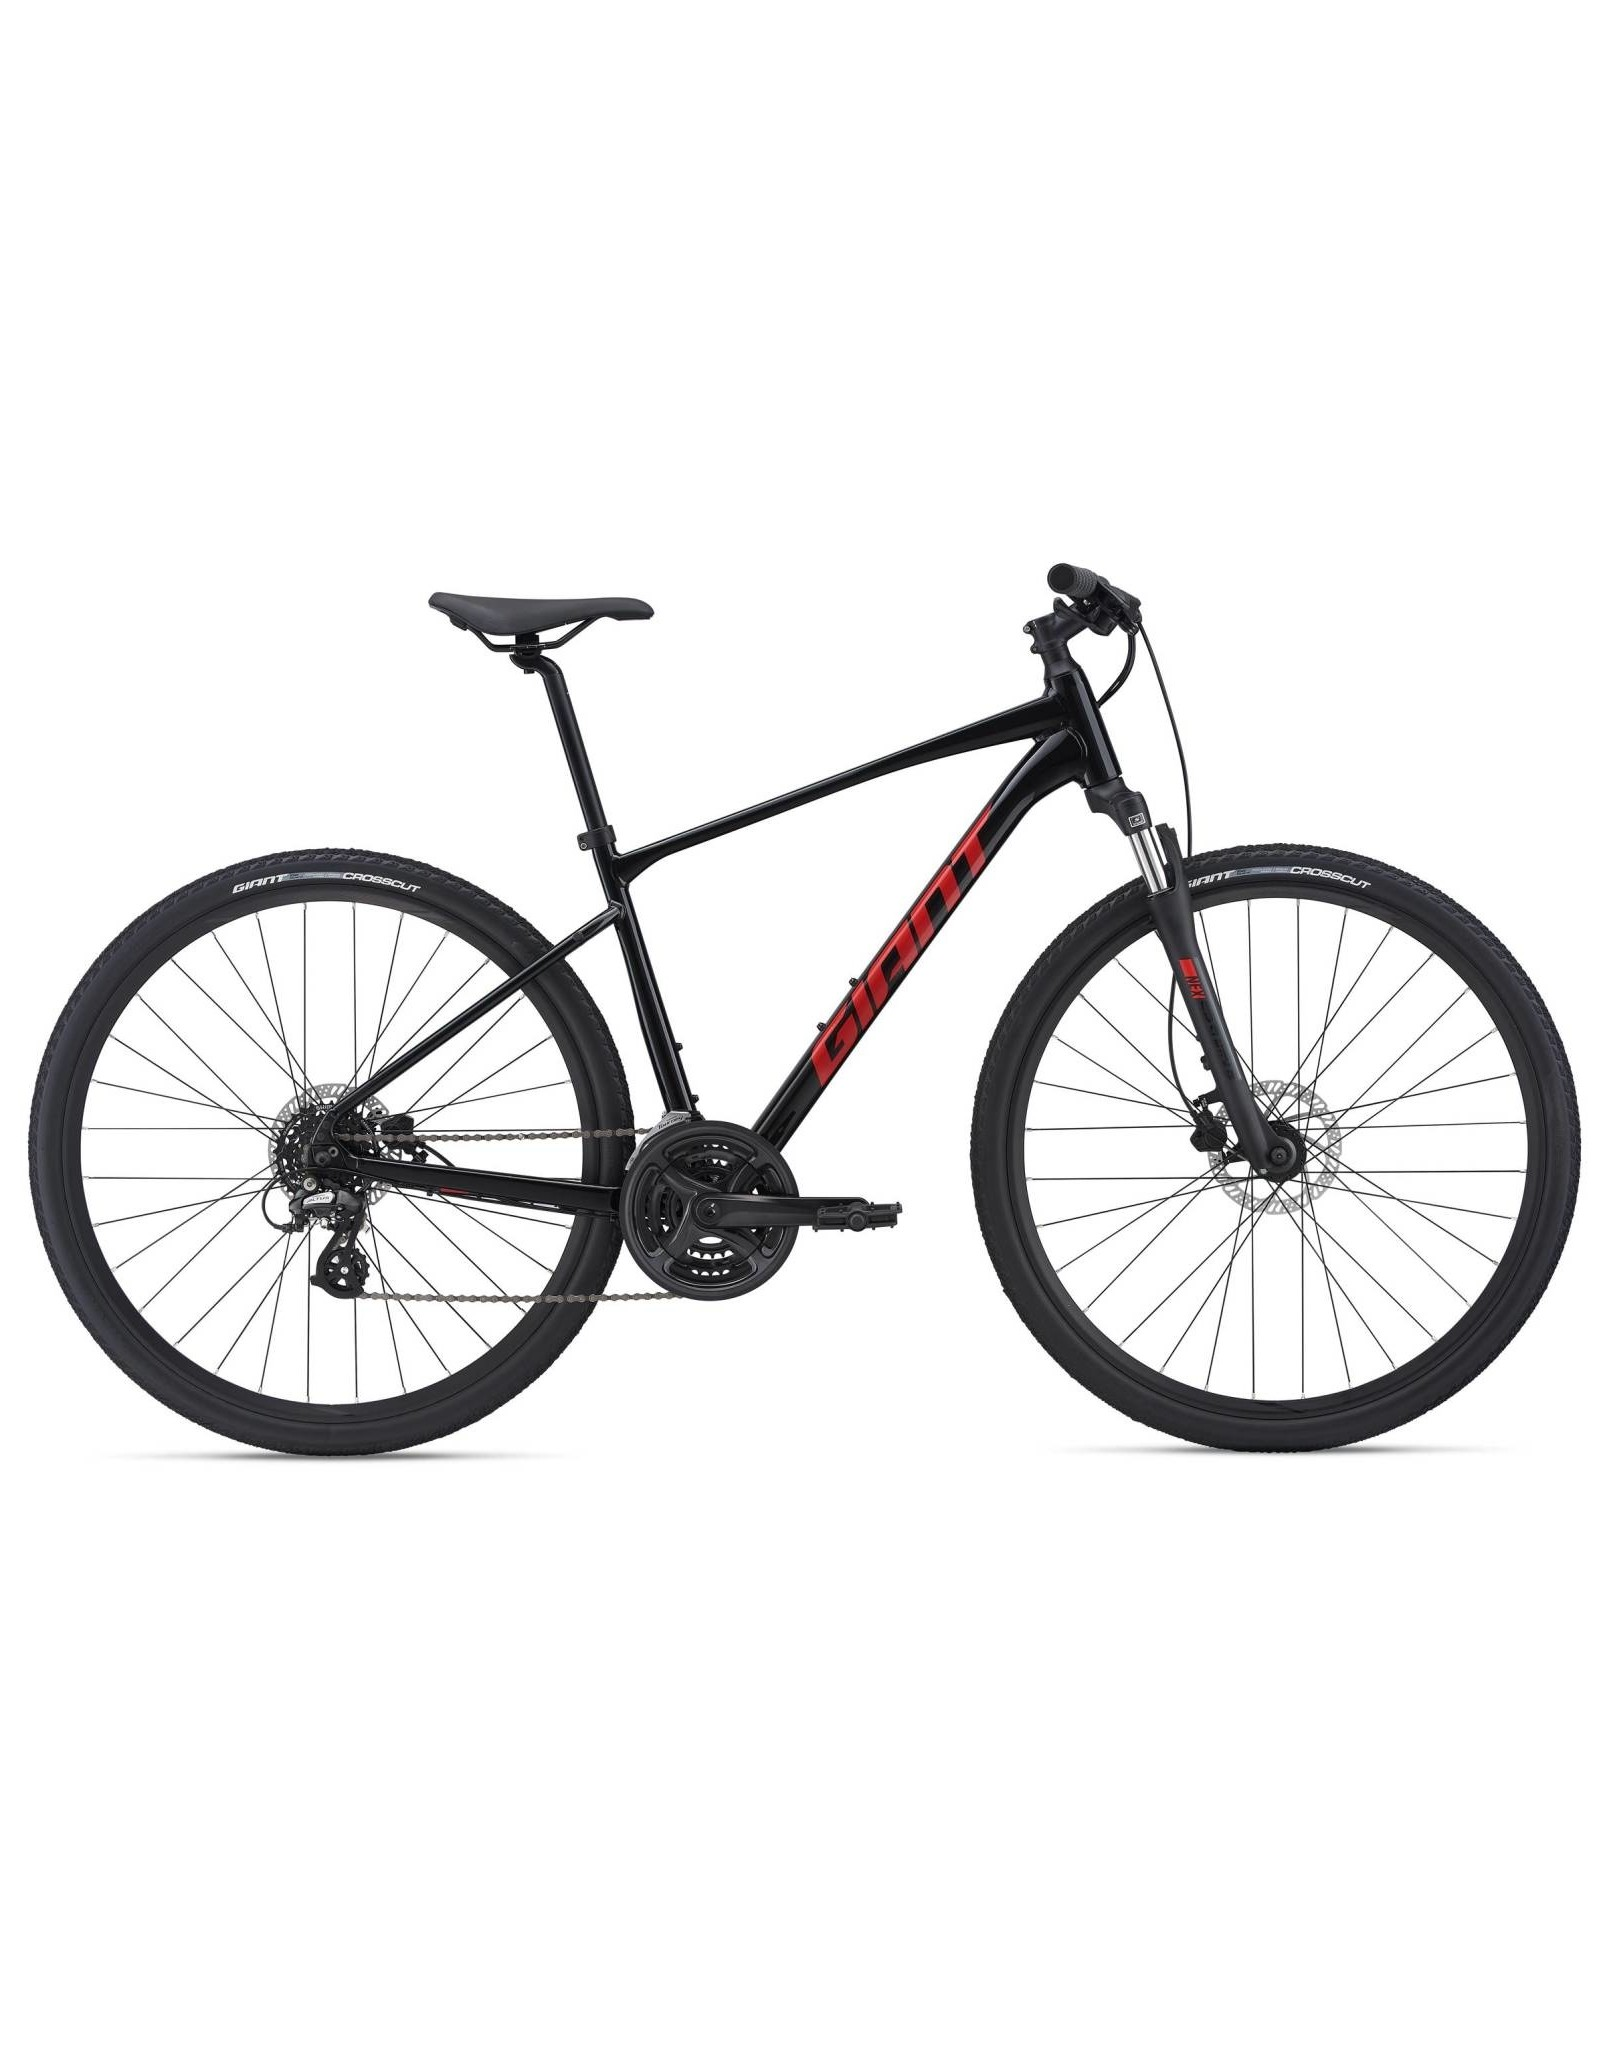 GIANT Giant Roam 4 Disc 2021 Black